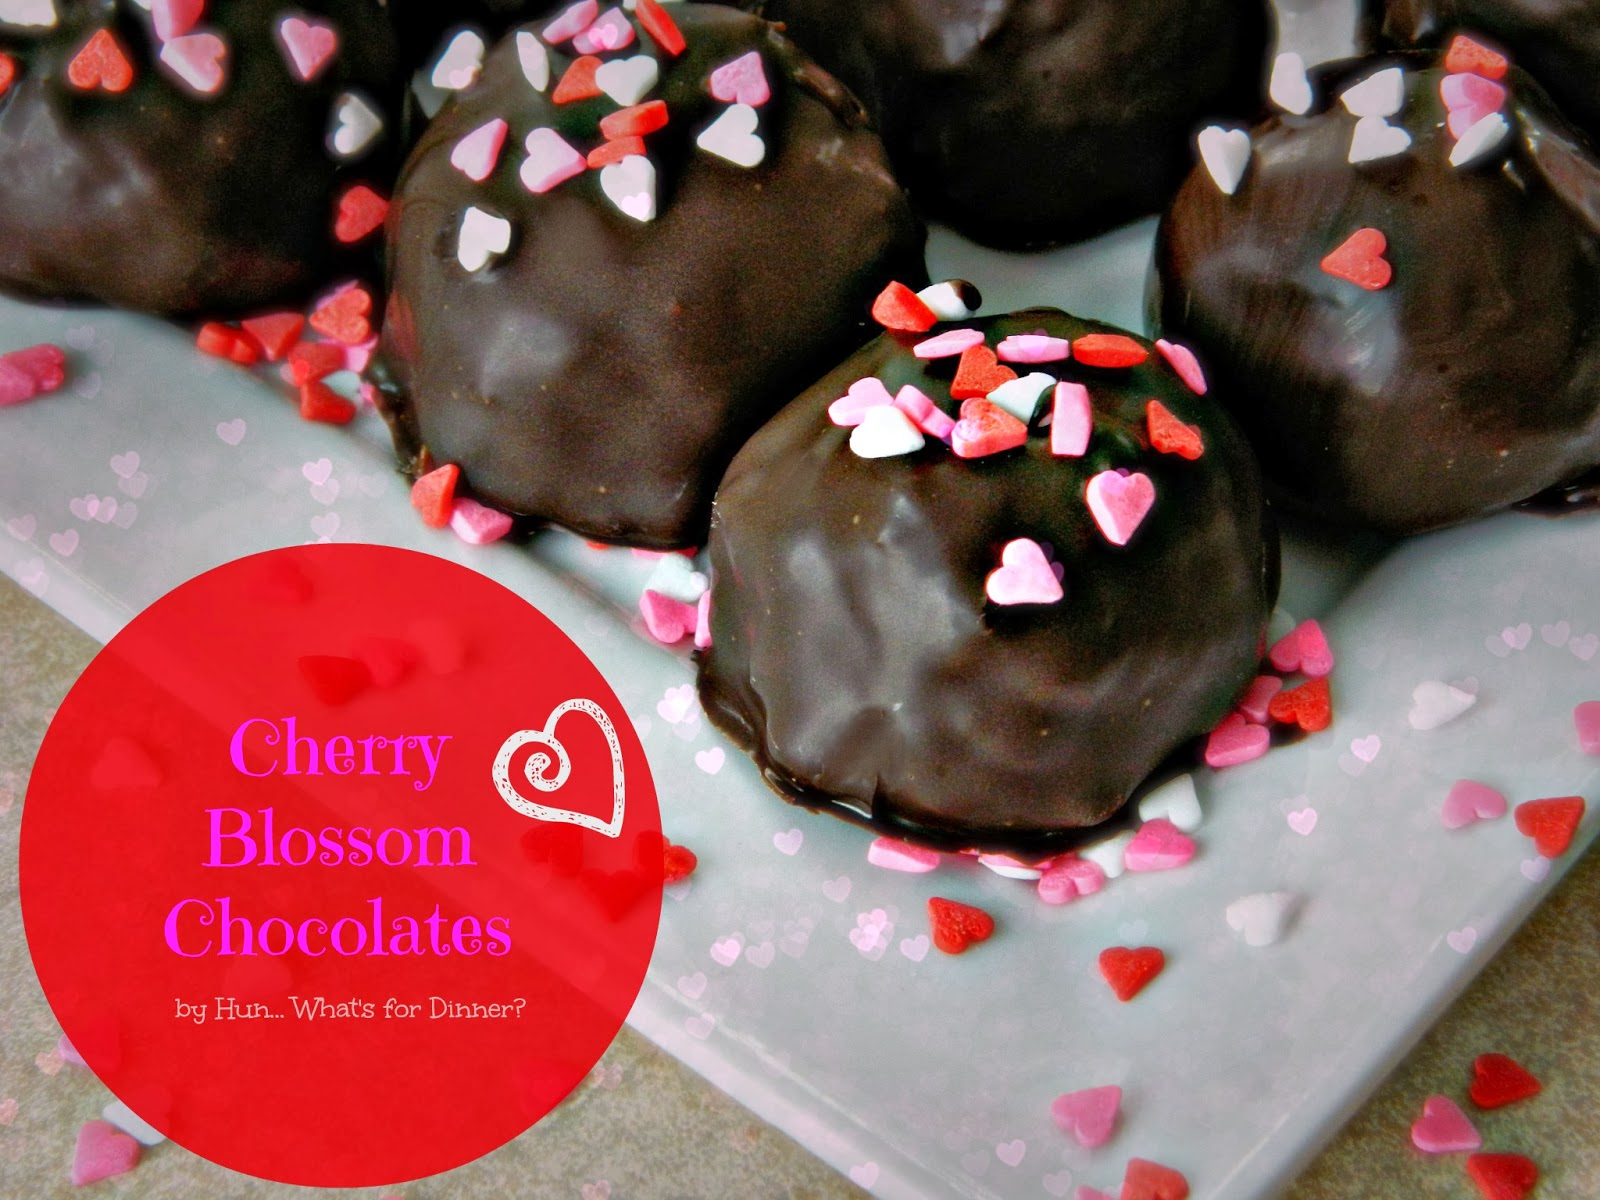 Cherry Blossom Chocolates- a childhood favourite made new again. www.hunwhatsfordinner.com